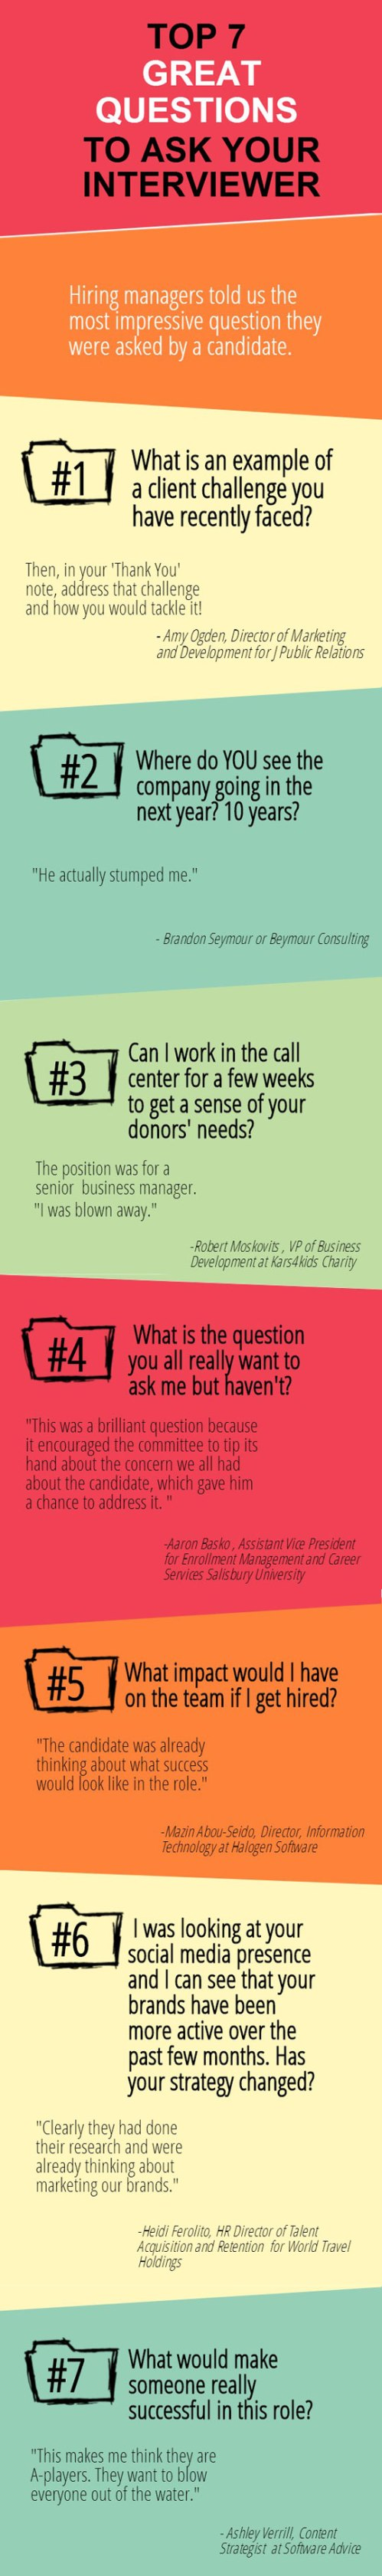 Top 7 questions you ask your interviewer